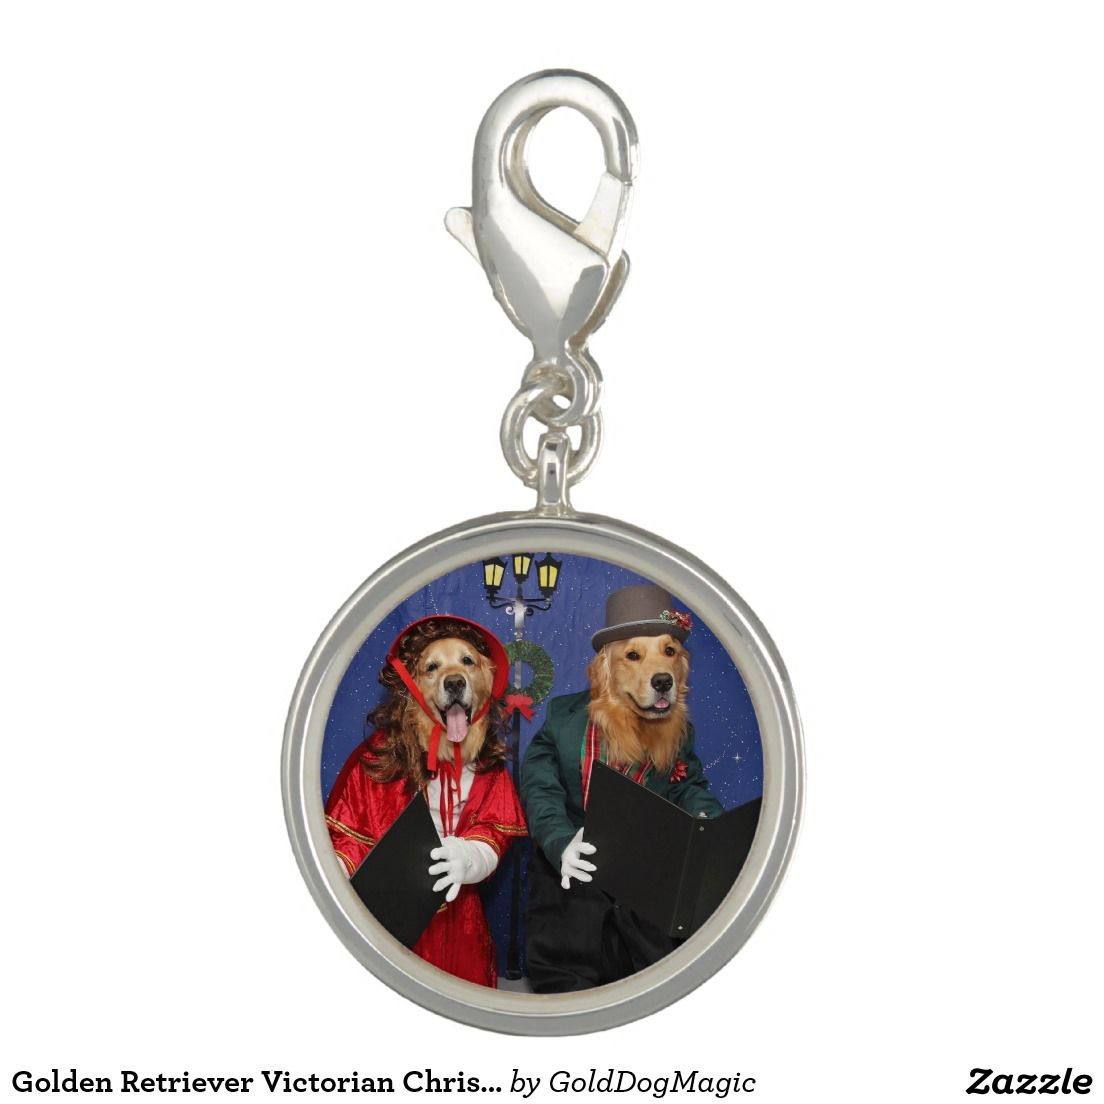 Golden Retriever Victorian Christmas Carolers Photo Charm